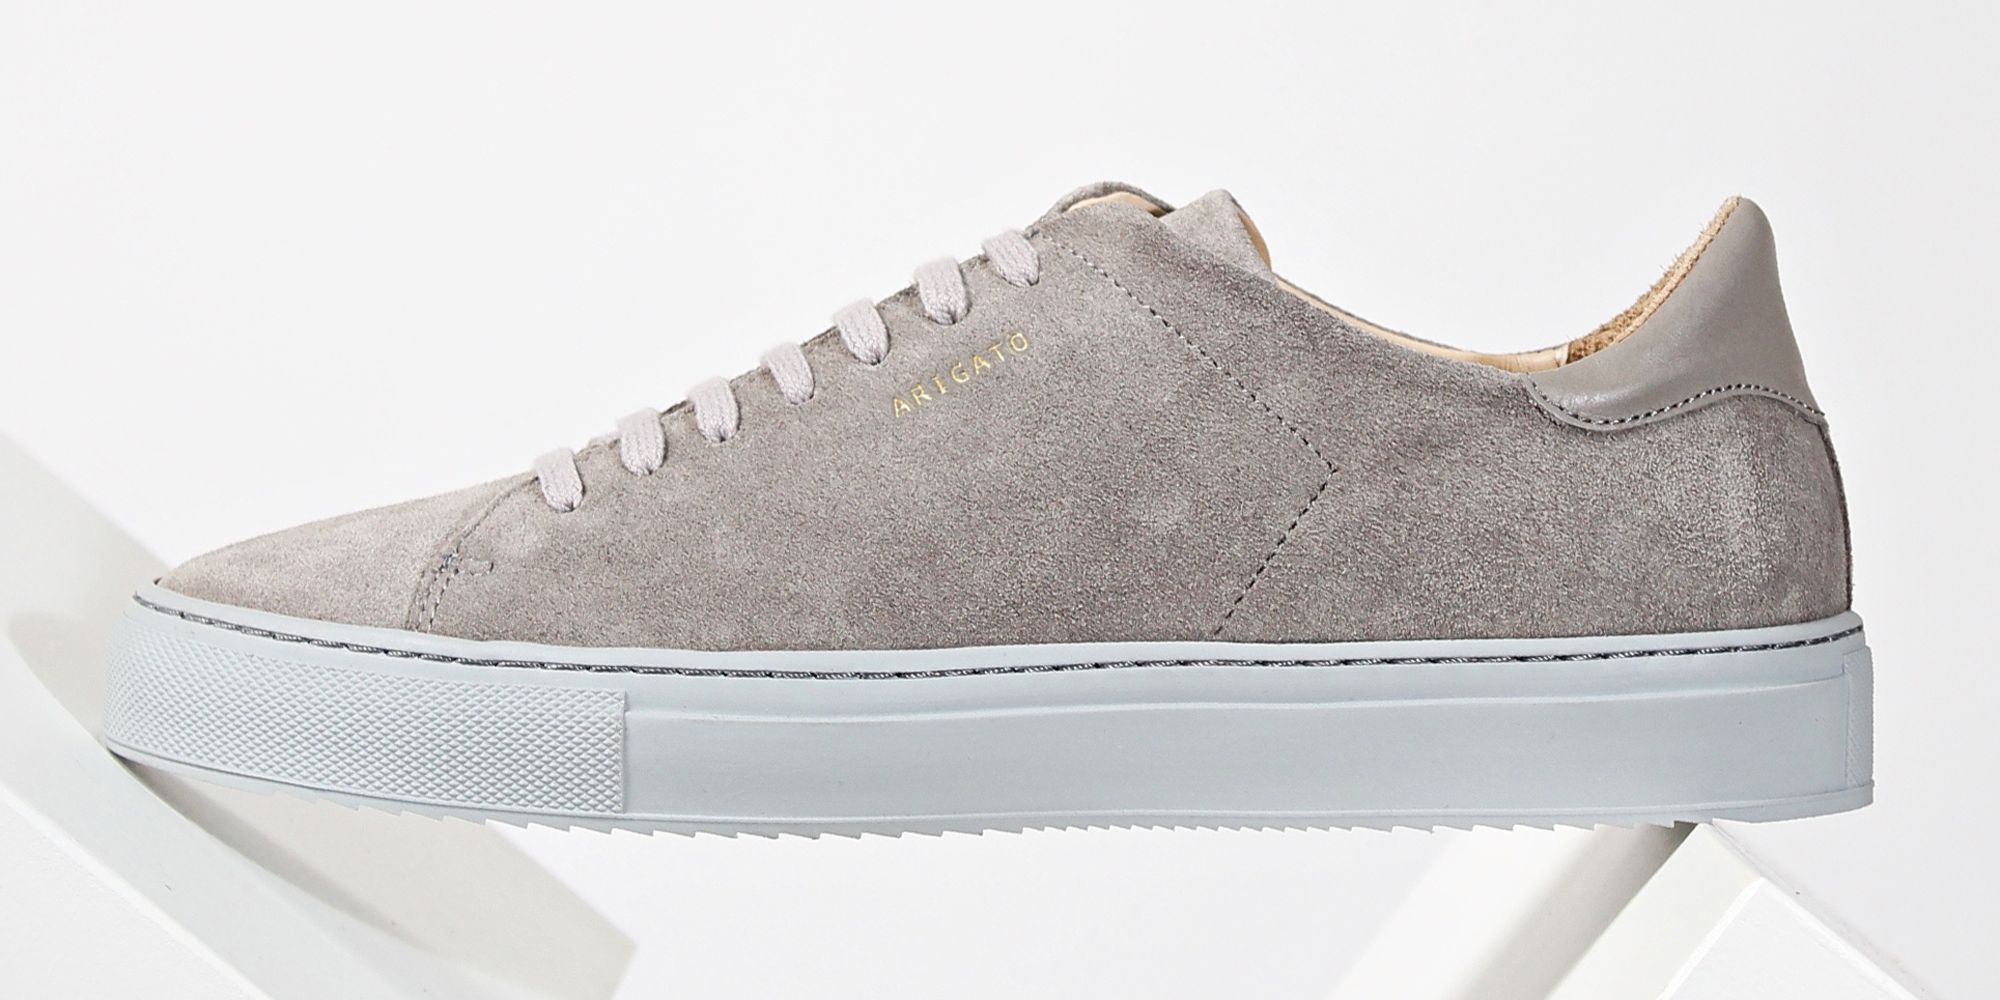 4a490e6ef The Footwear Fix: Axel Arigato Clean 90 Sneakers